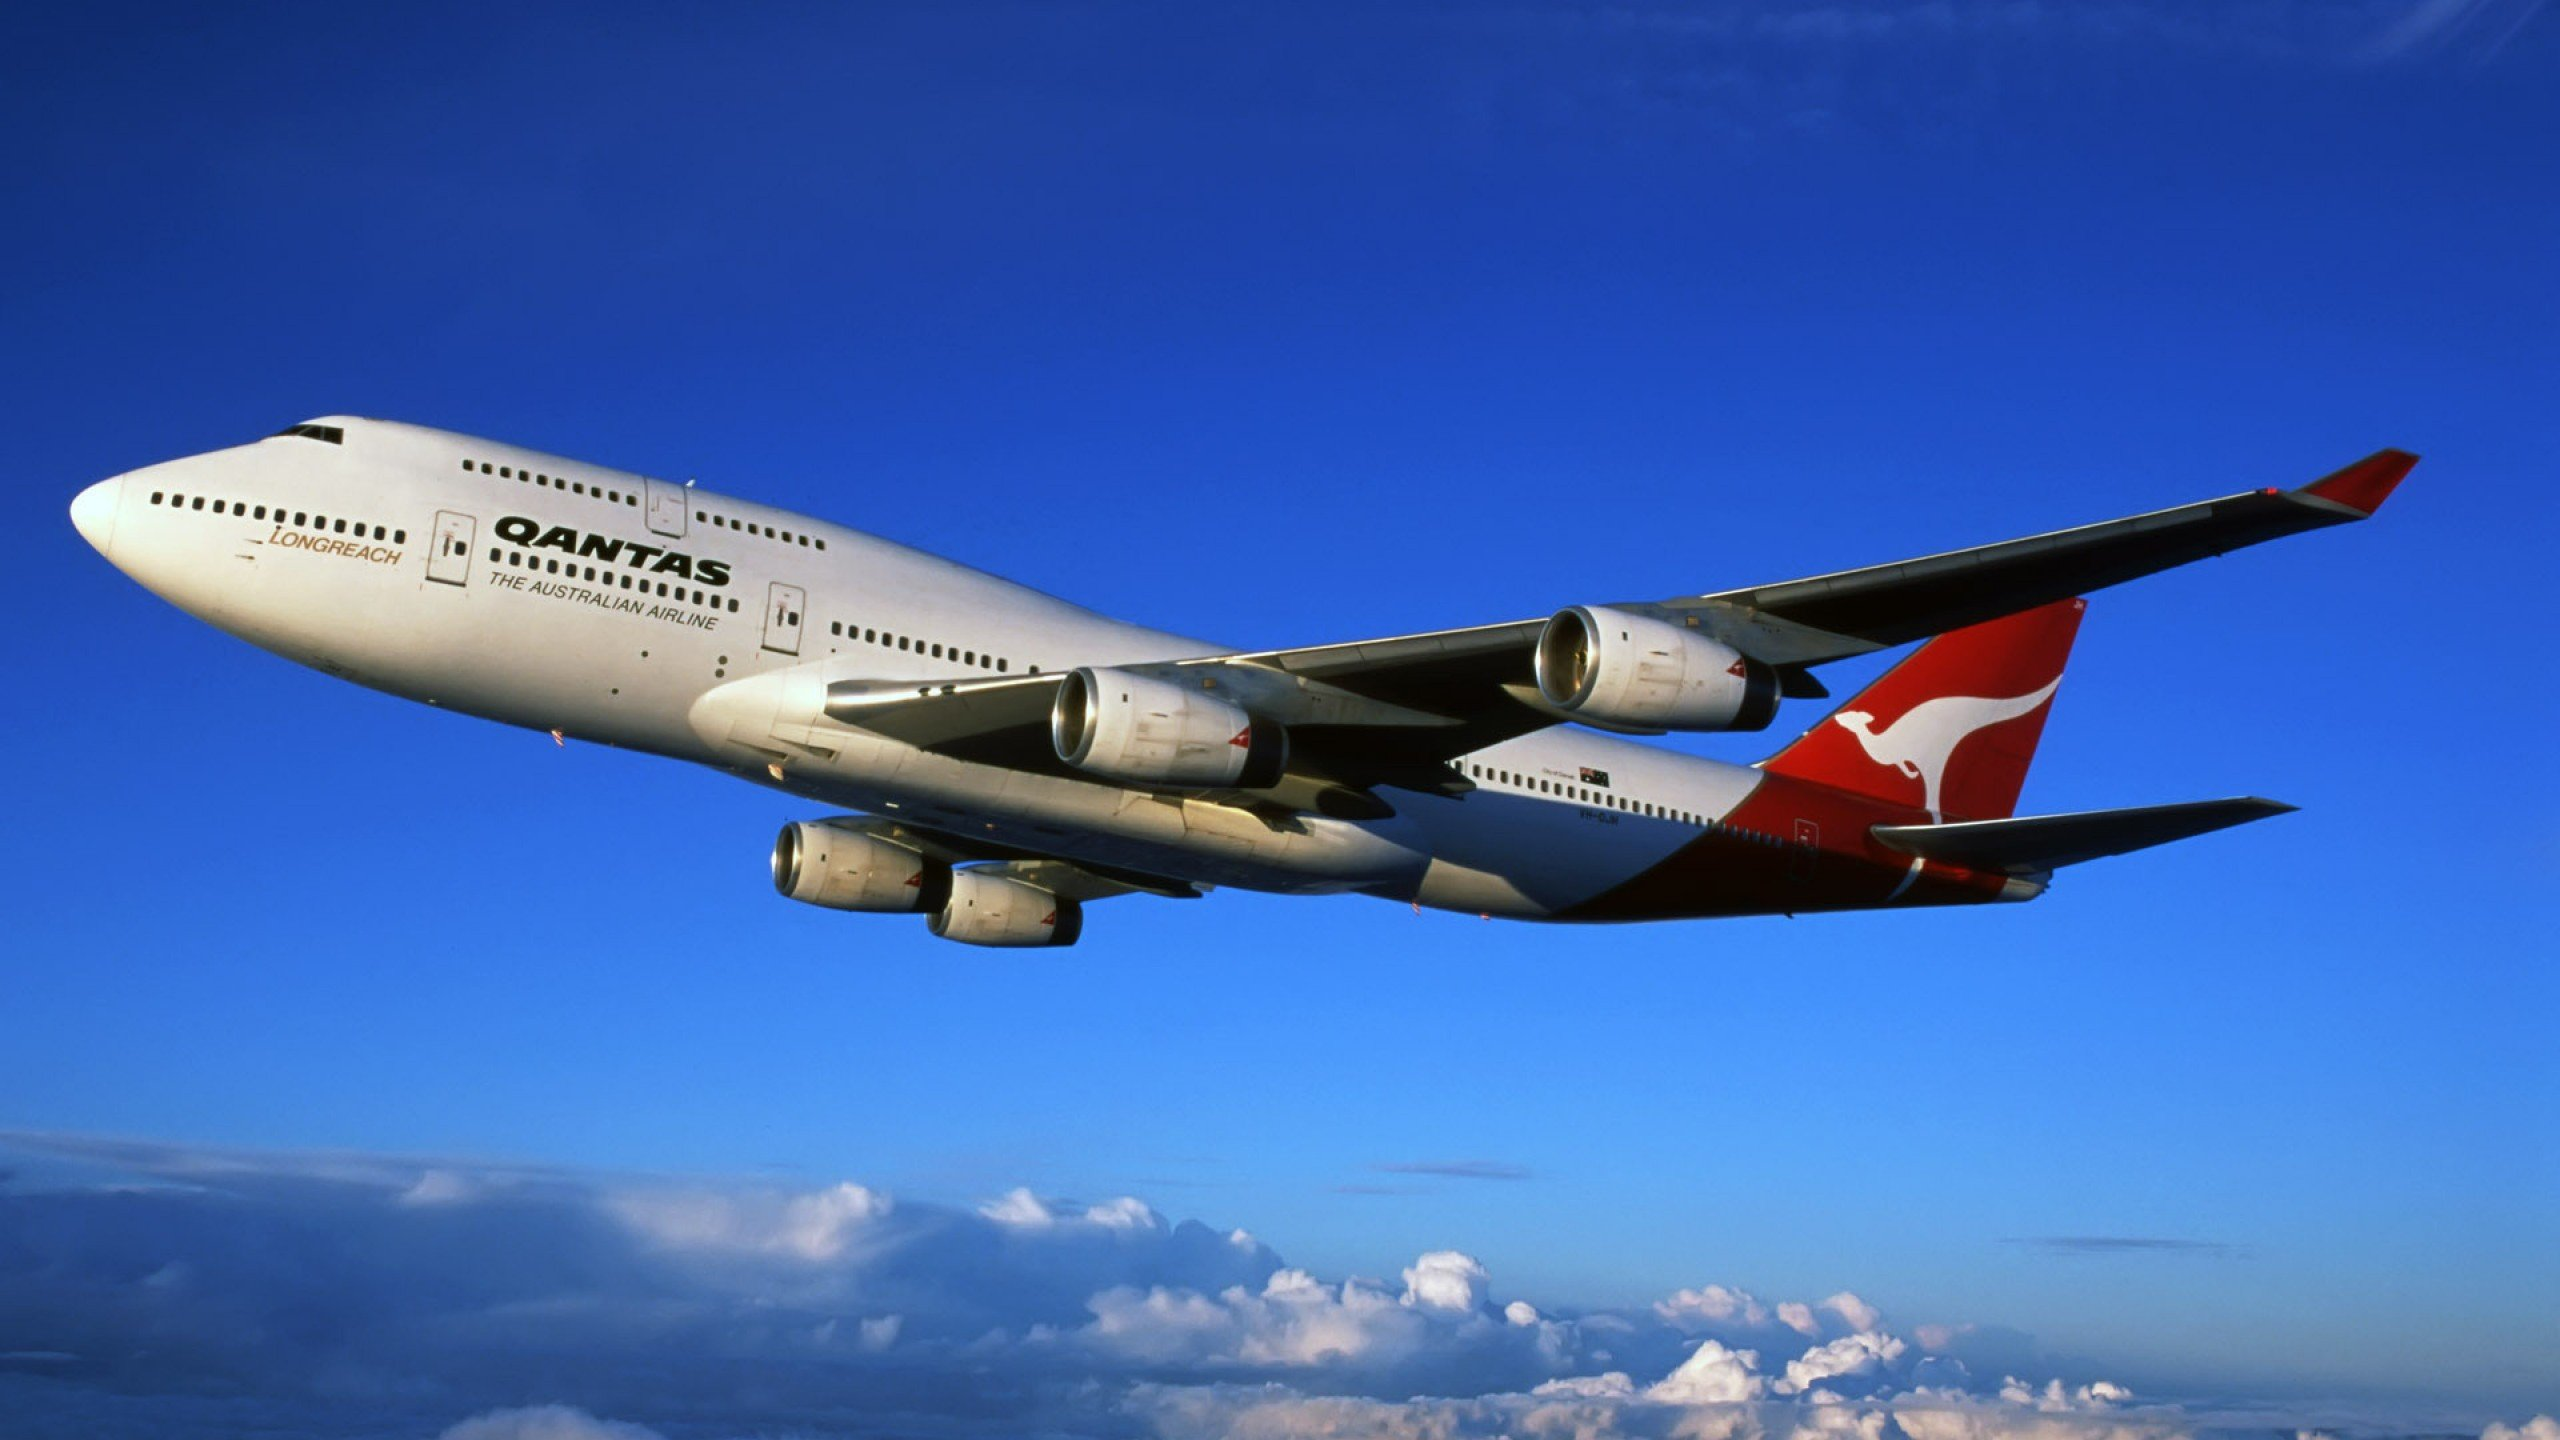 2560x1440 - Boeing 747 Wallpapers 1